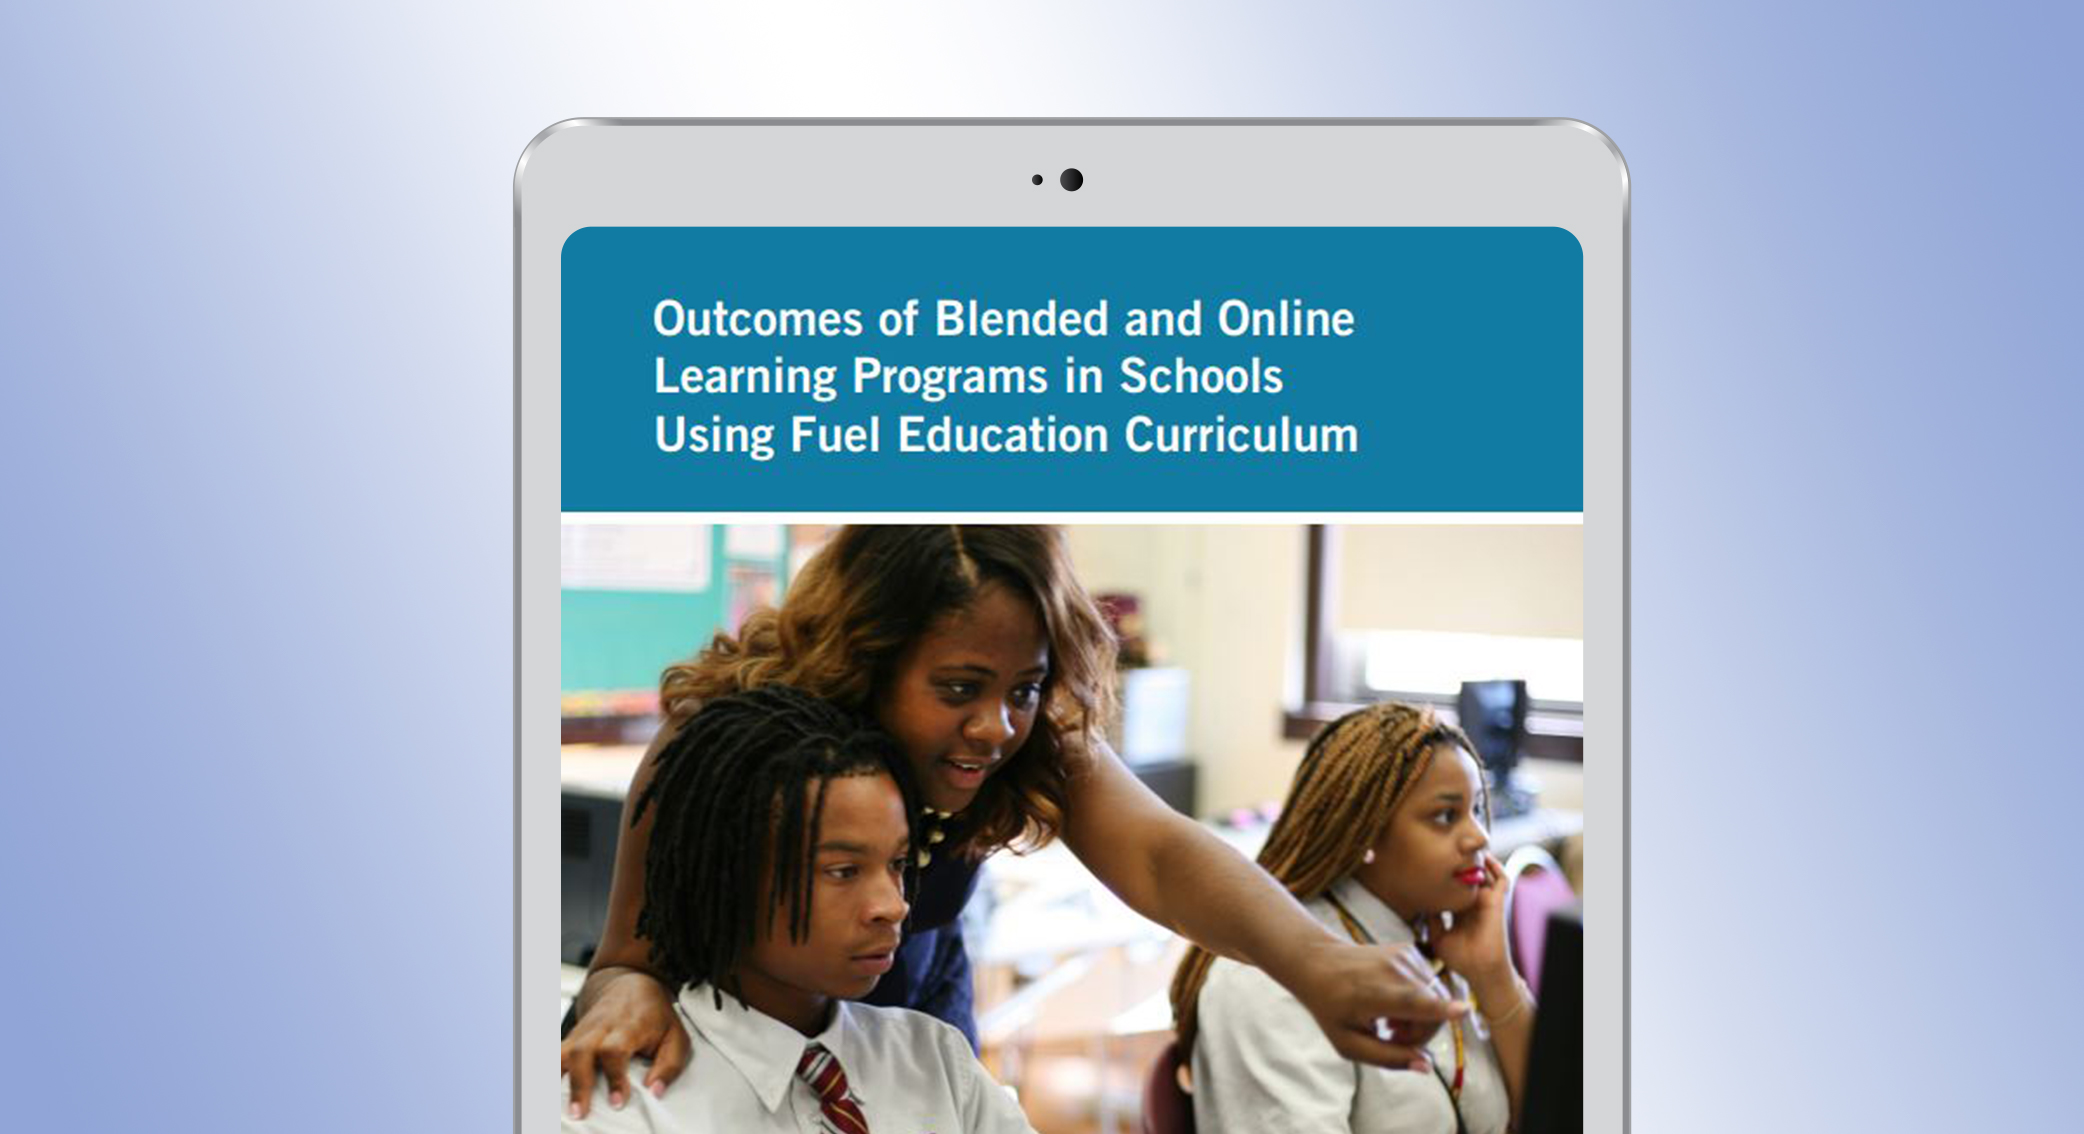 Results for Blended and Online Learning Programs